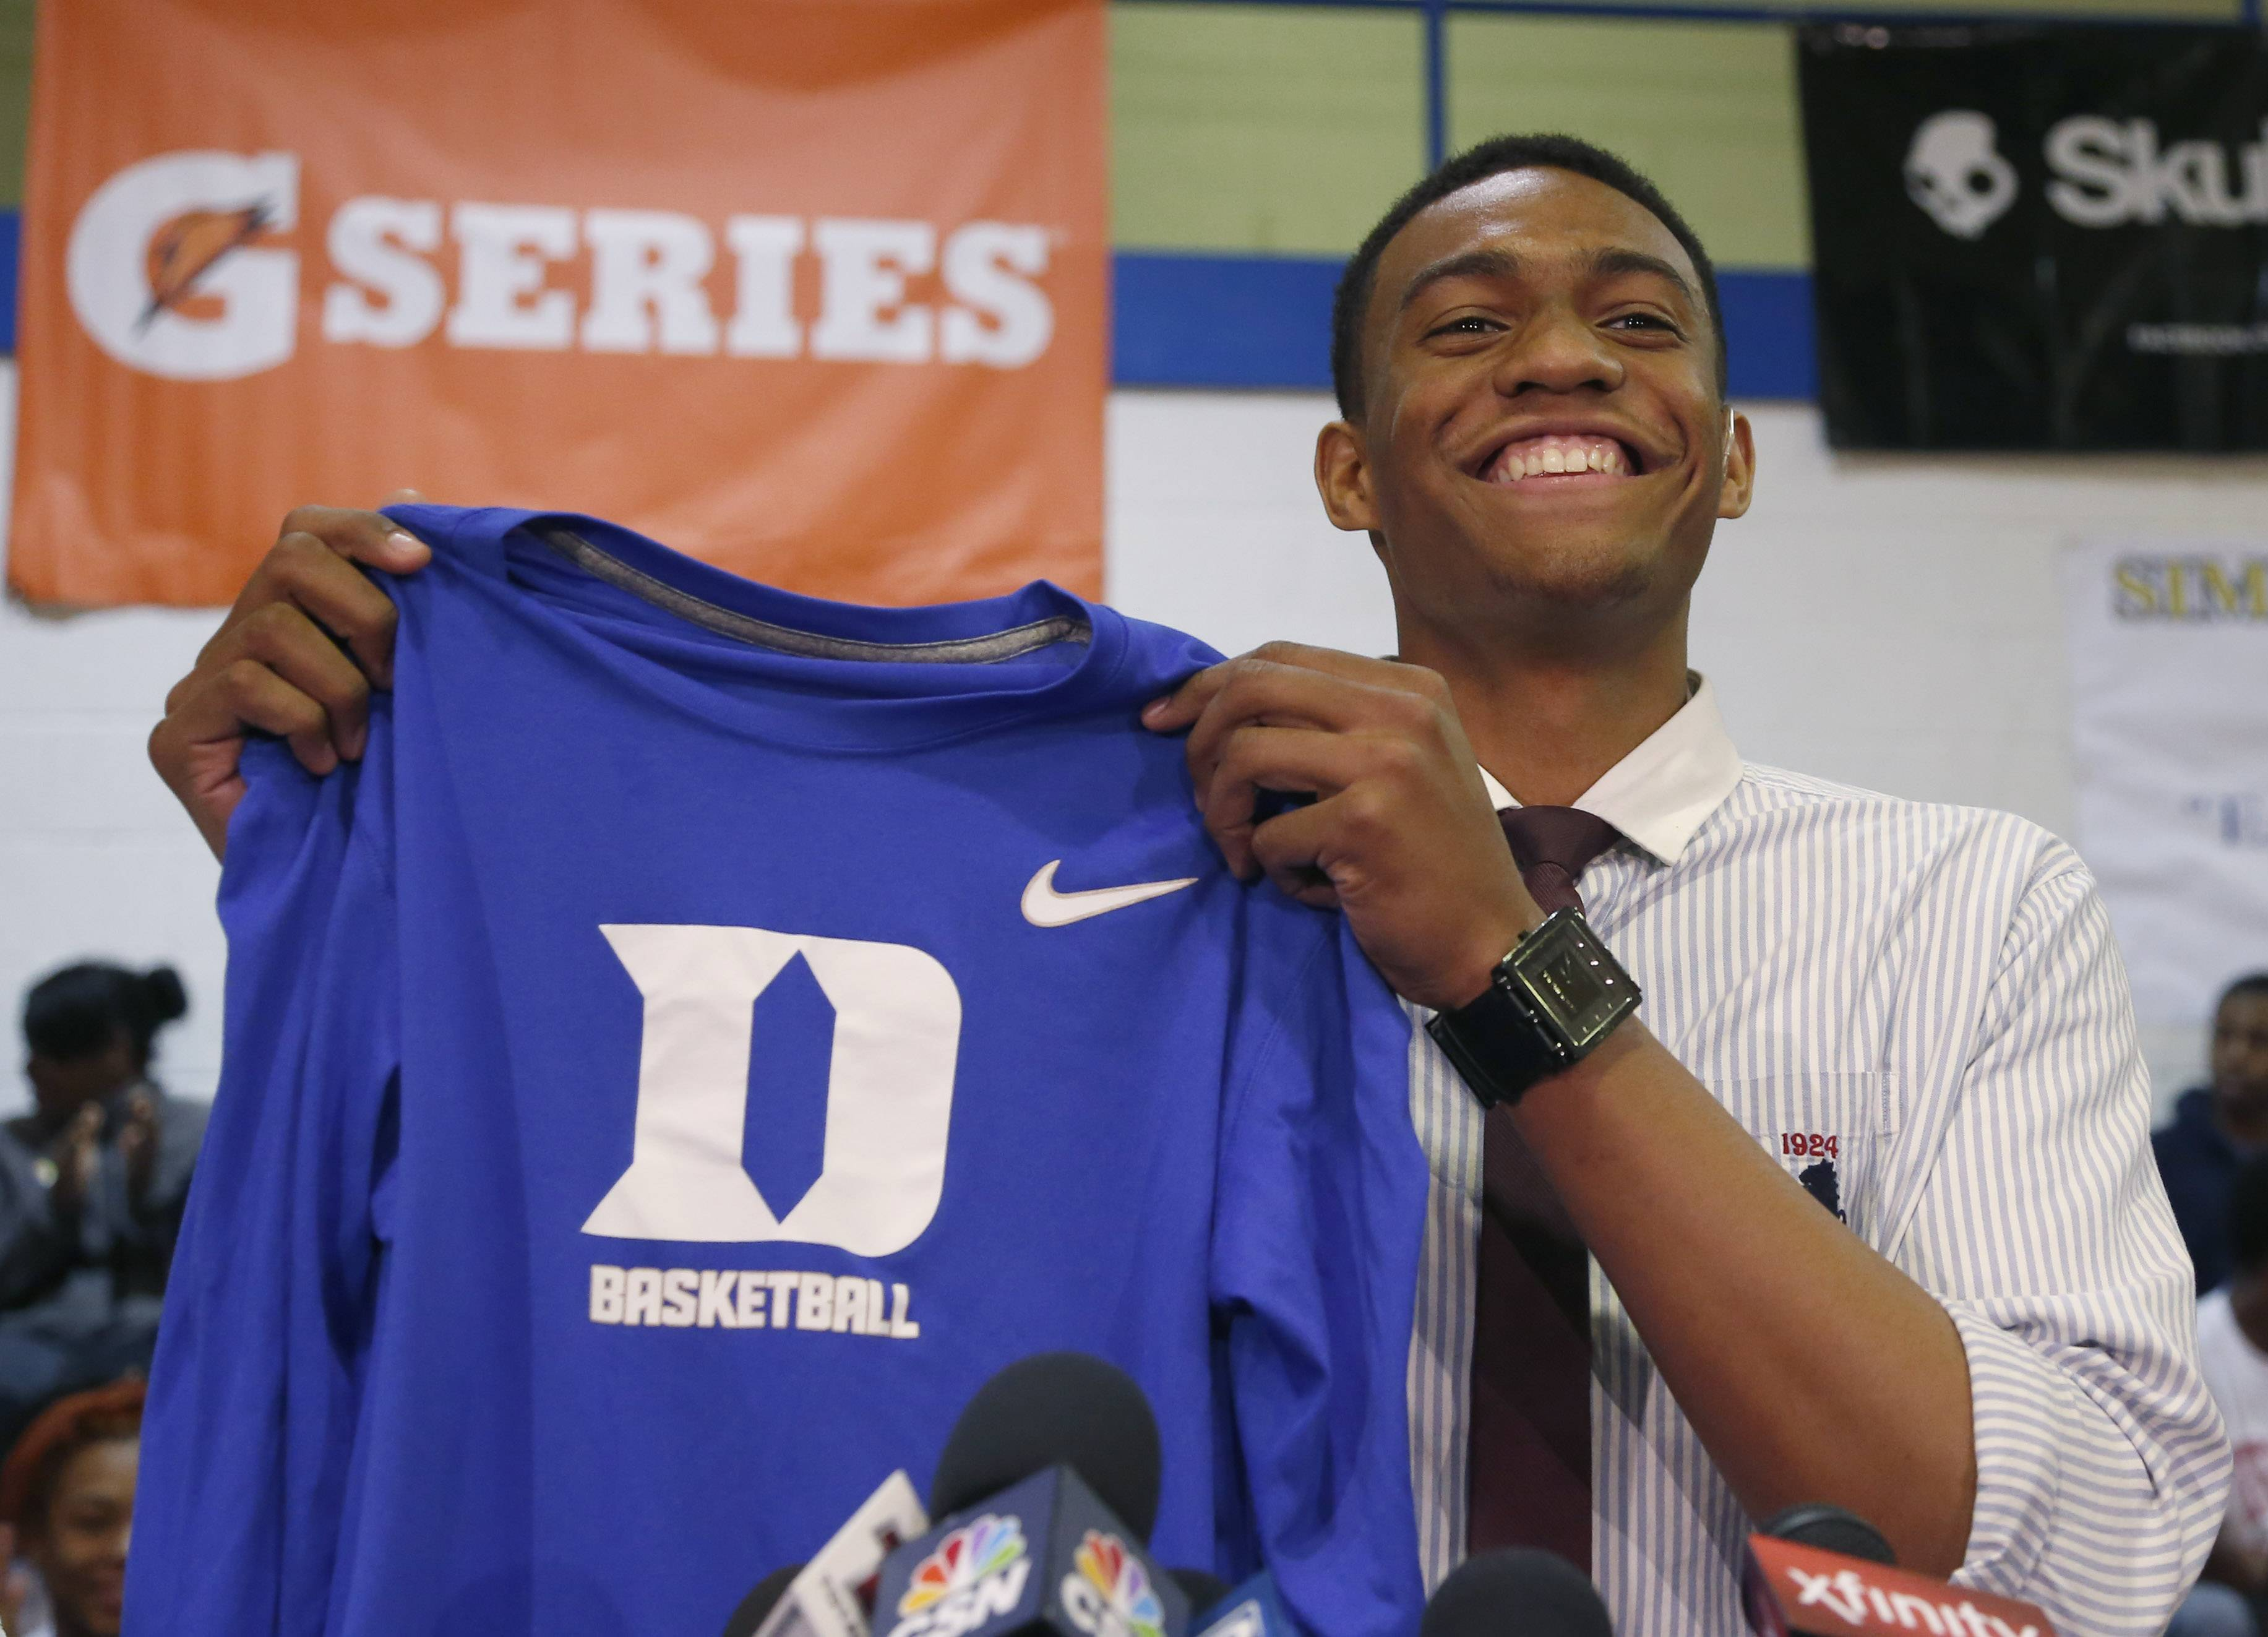 Chicago's Simeon Career Academy's Jabari Parker announces Thursday he will be attending Duke during a news conference at his high school.